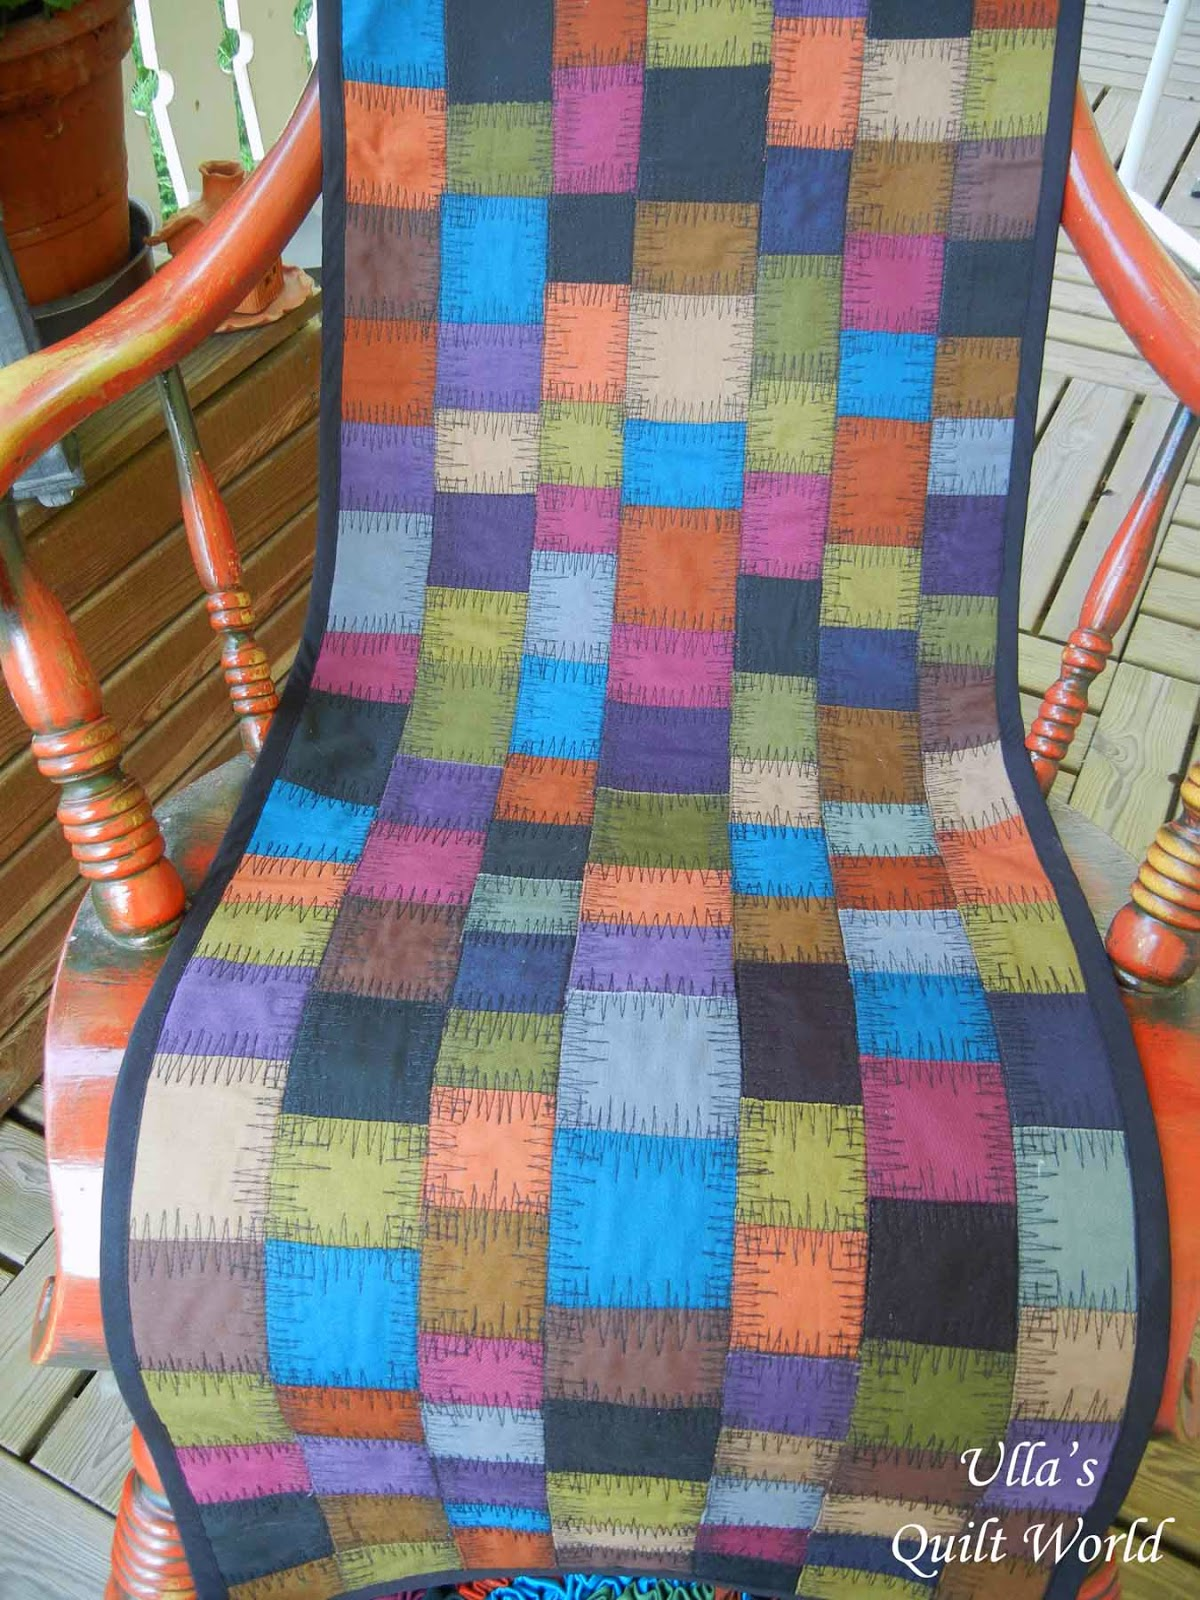 Chair Cover Quilting Casters Walmart Ulla 39s Quilt World Rocking And A Rug 43tutorial